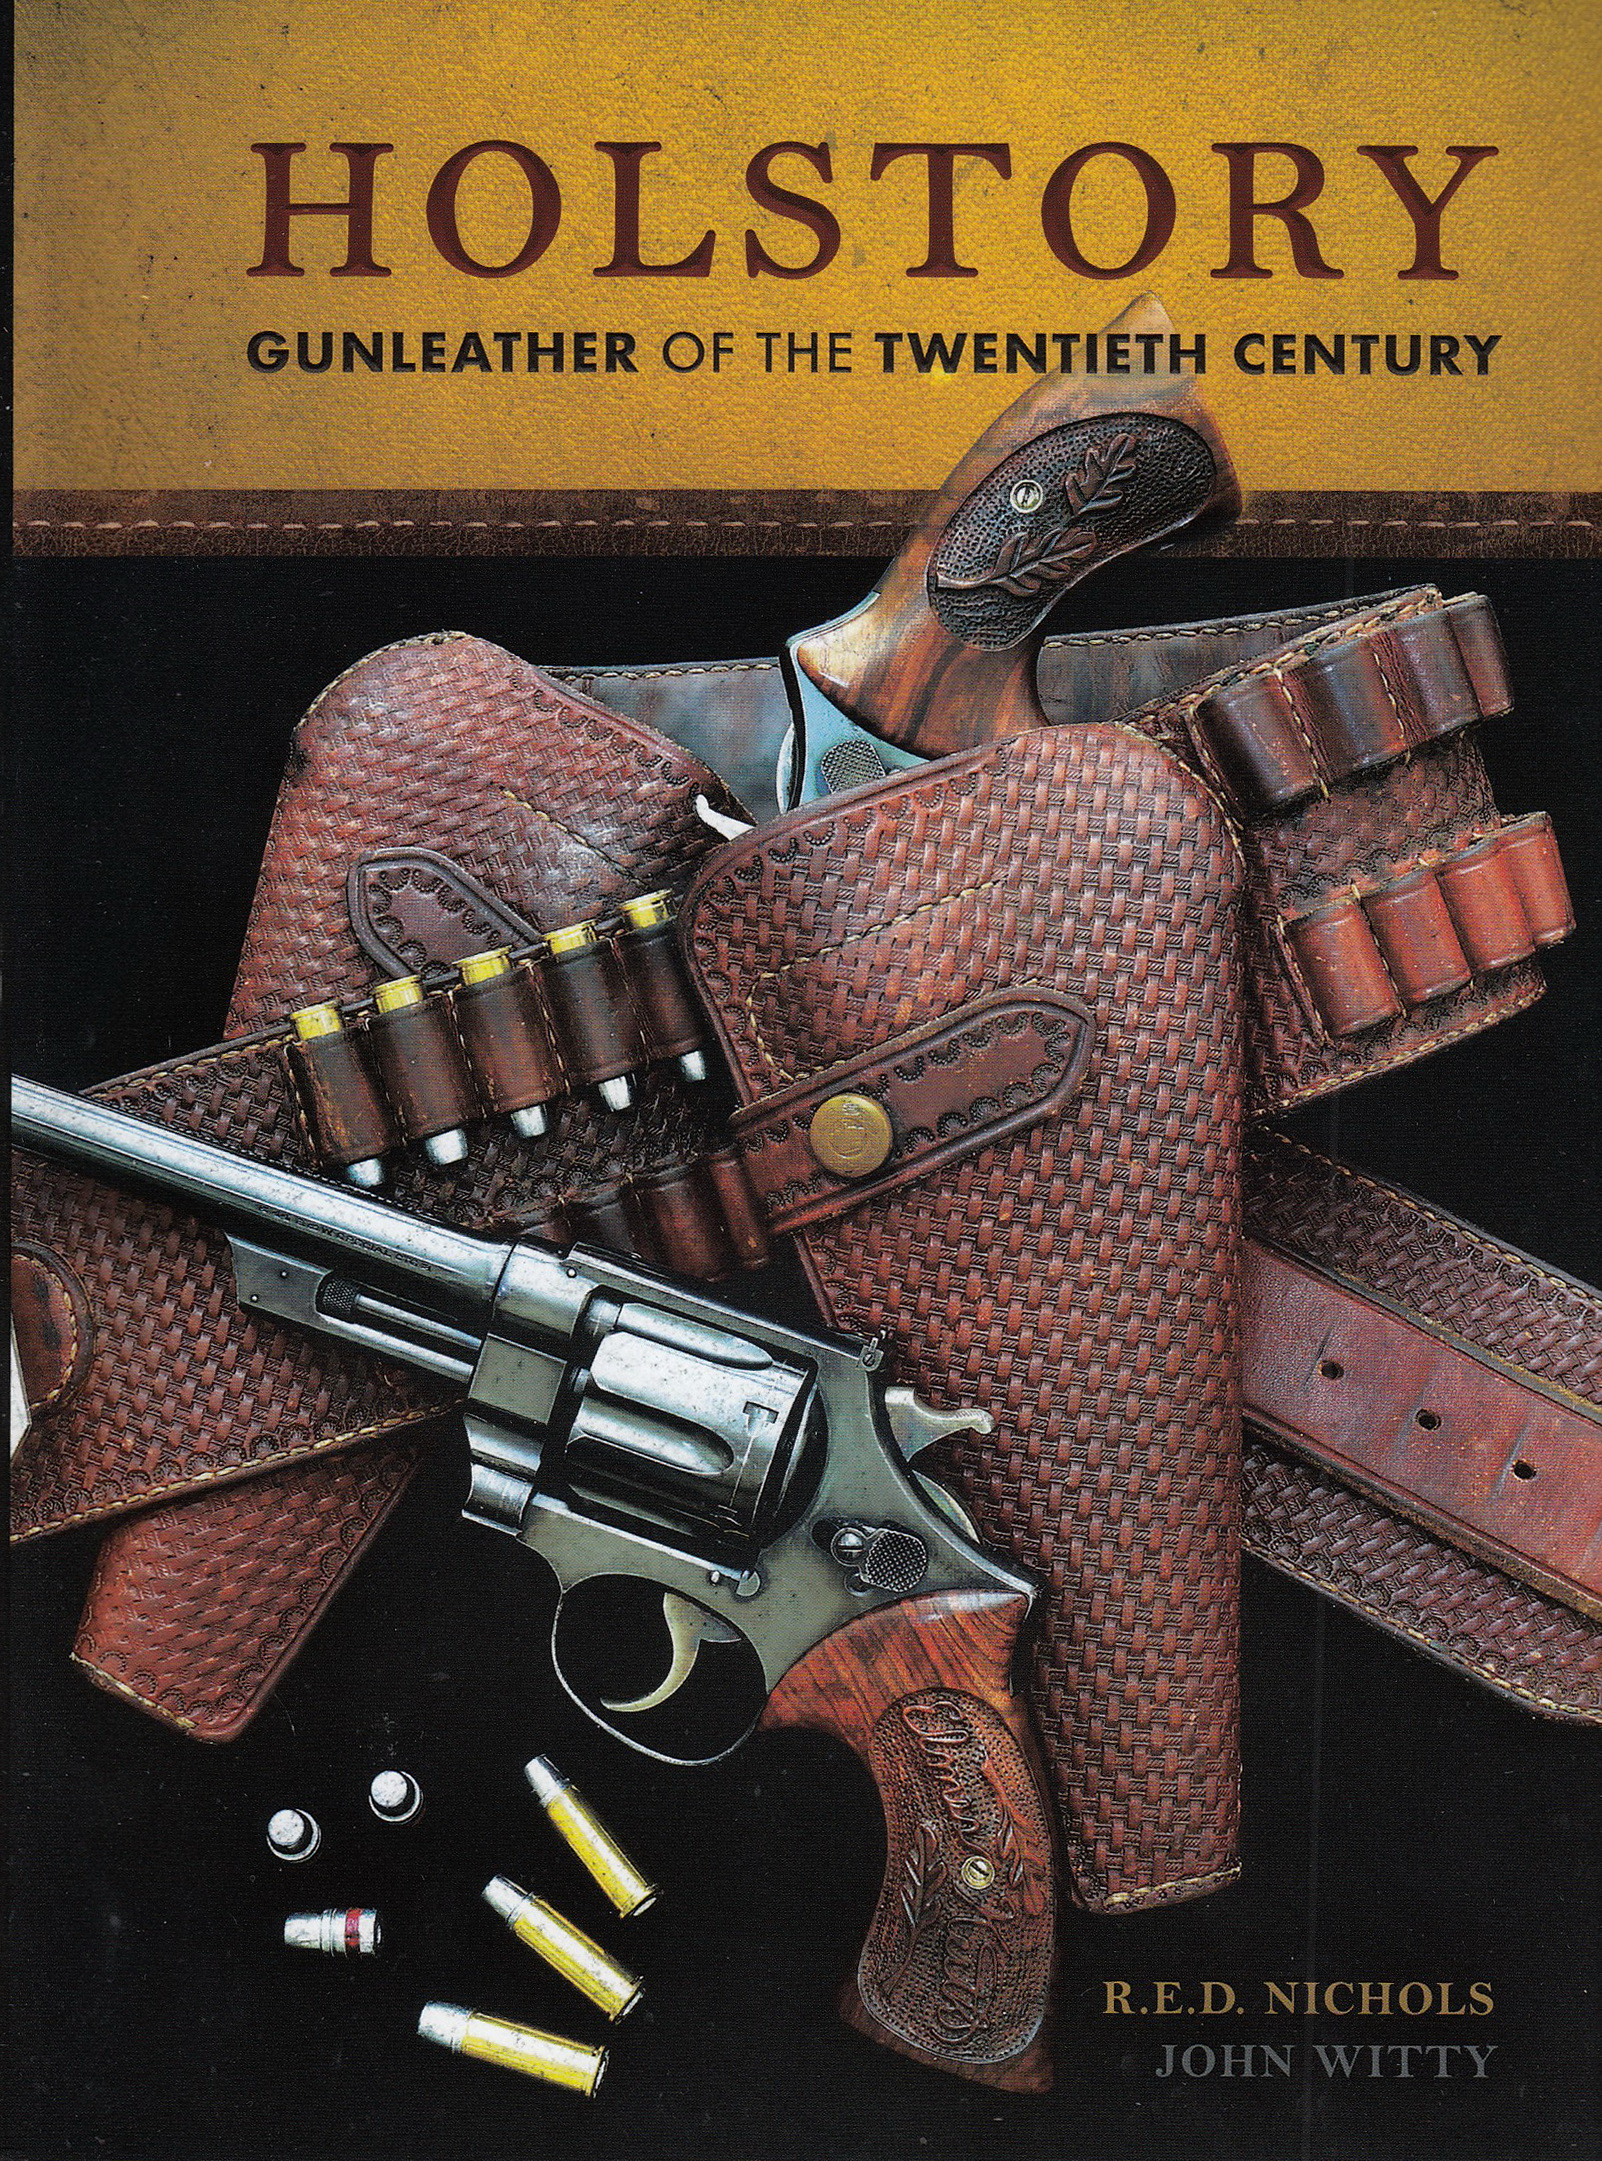 Holstory: Gunleather of the 20th Century